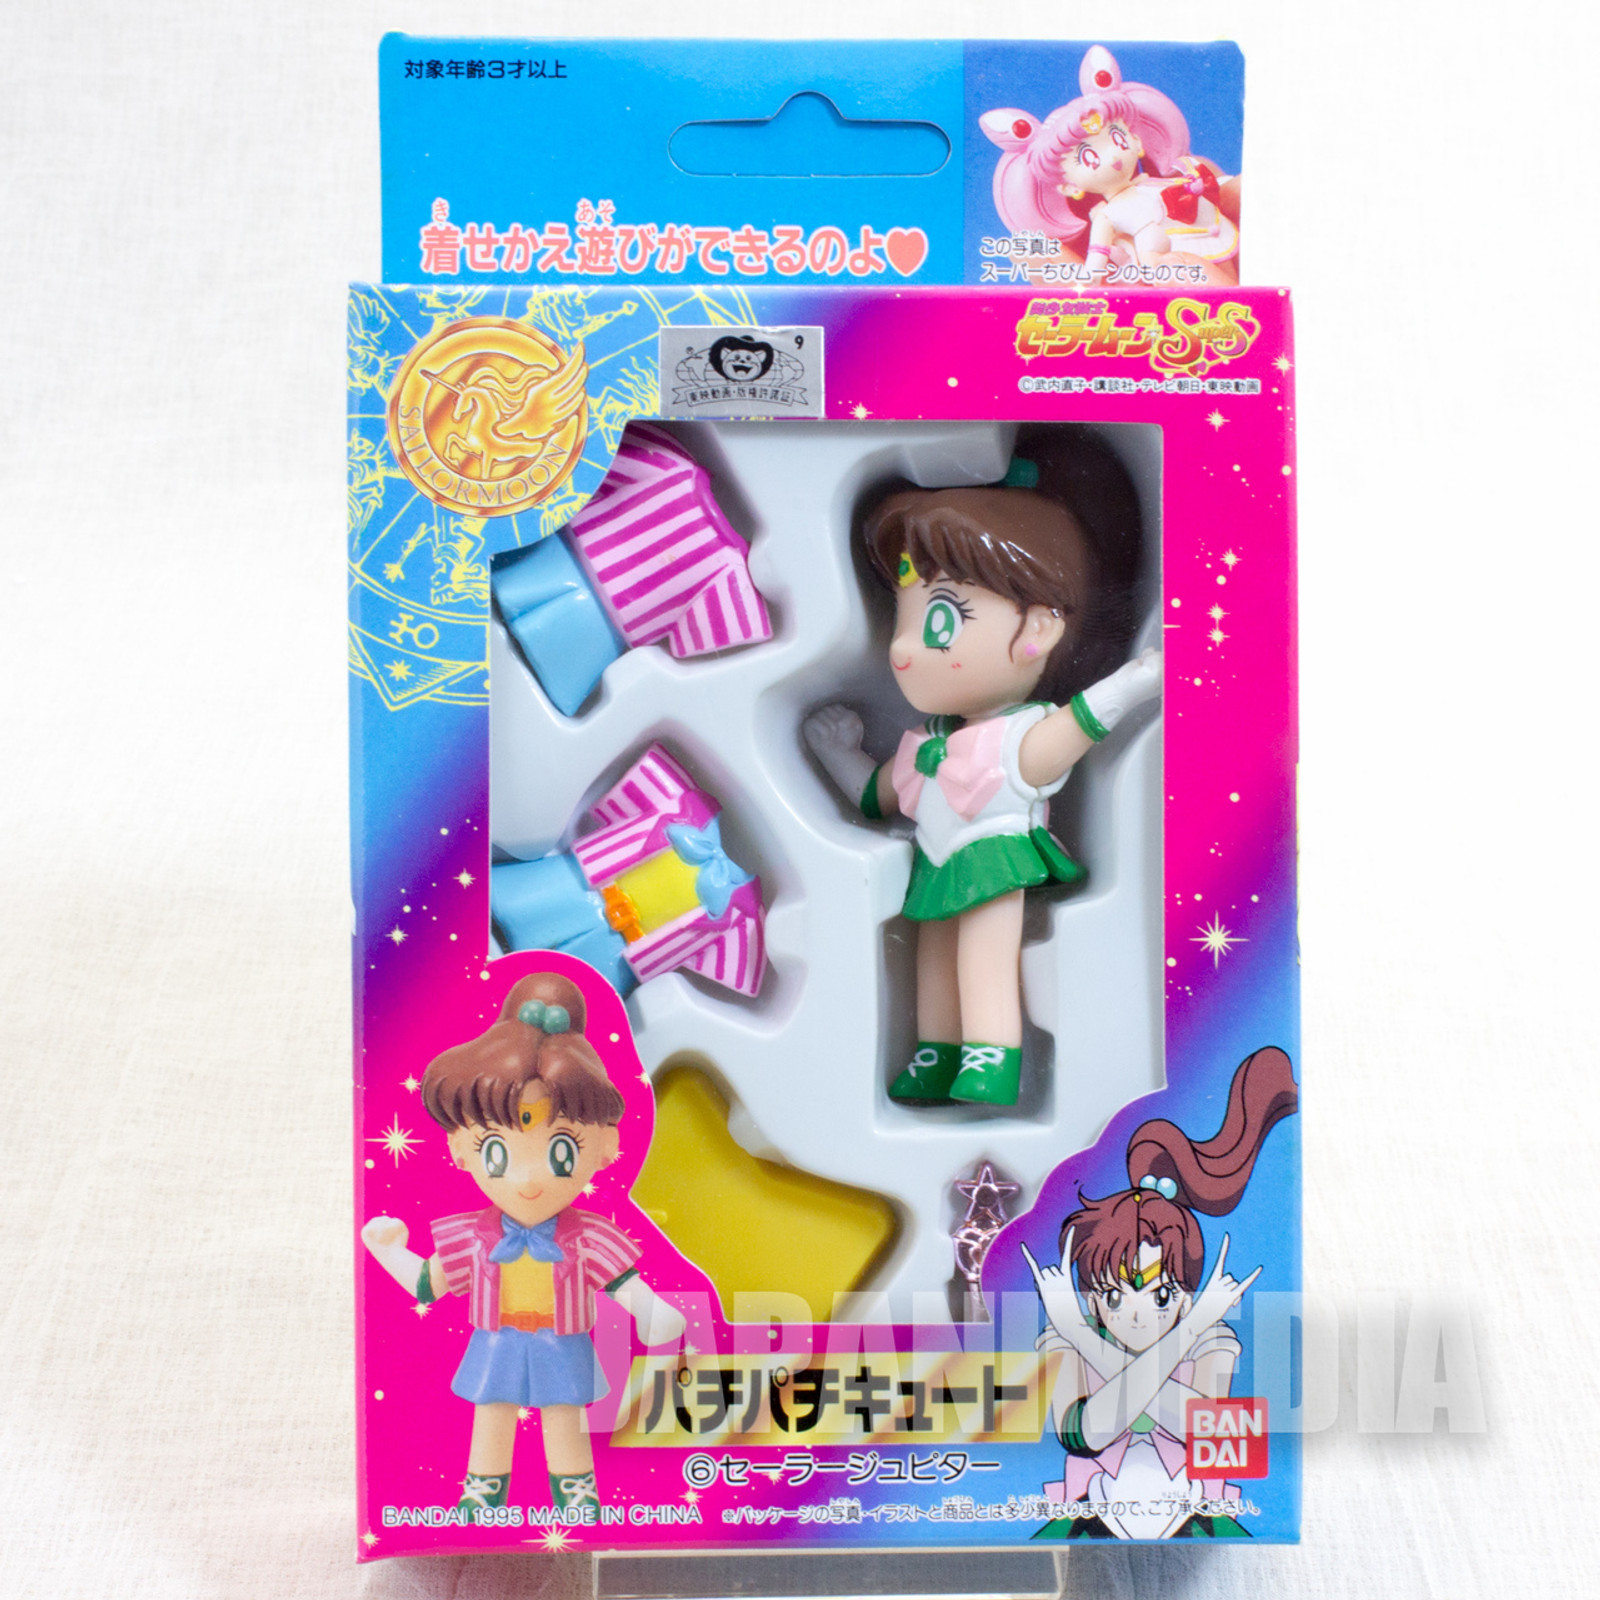 Retro RARE Sailor Moon Sailor Jupiter (Makoto Kino) PachiPachi Cute Figure BANDAI JAPAN